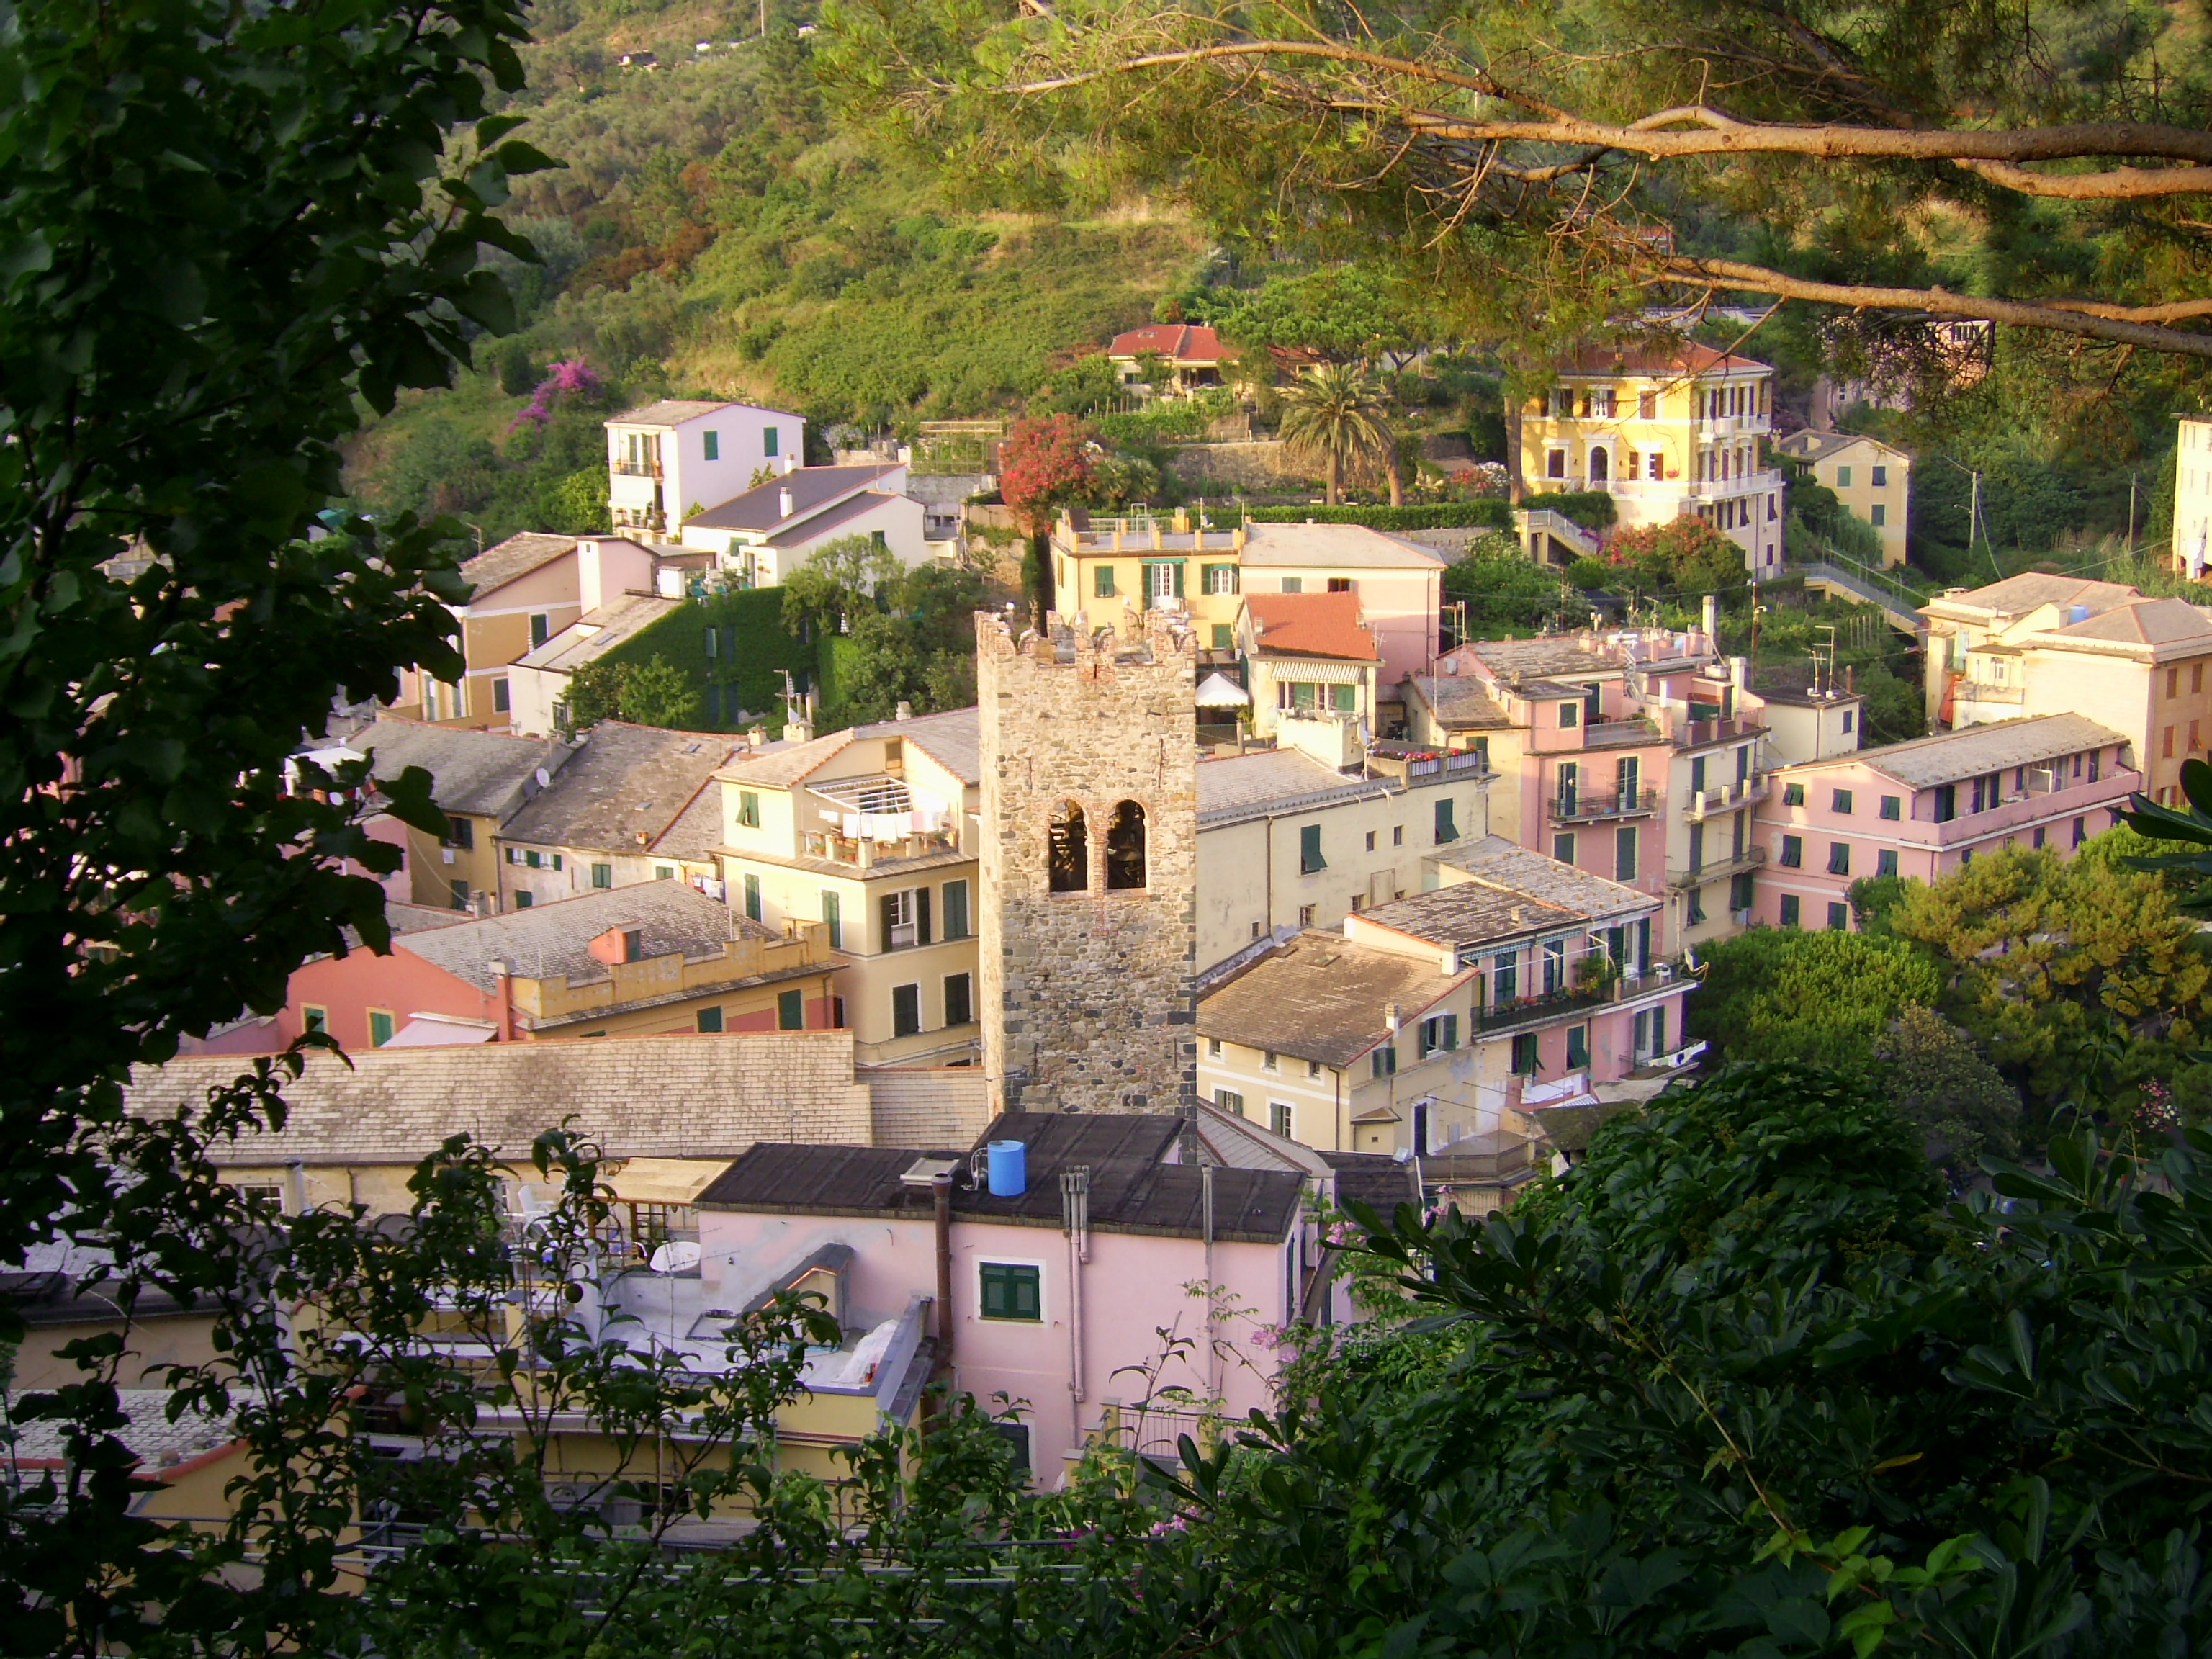 view of the village of Monterosso